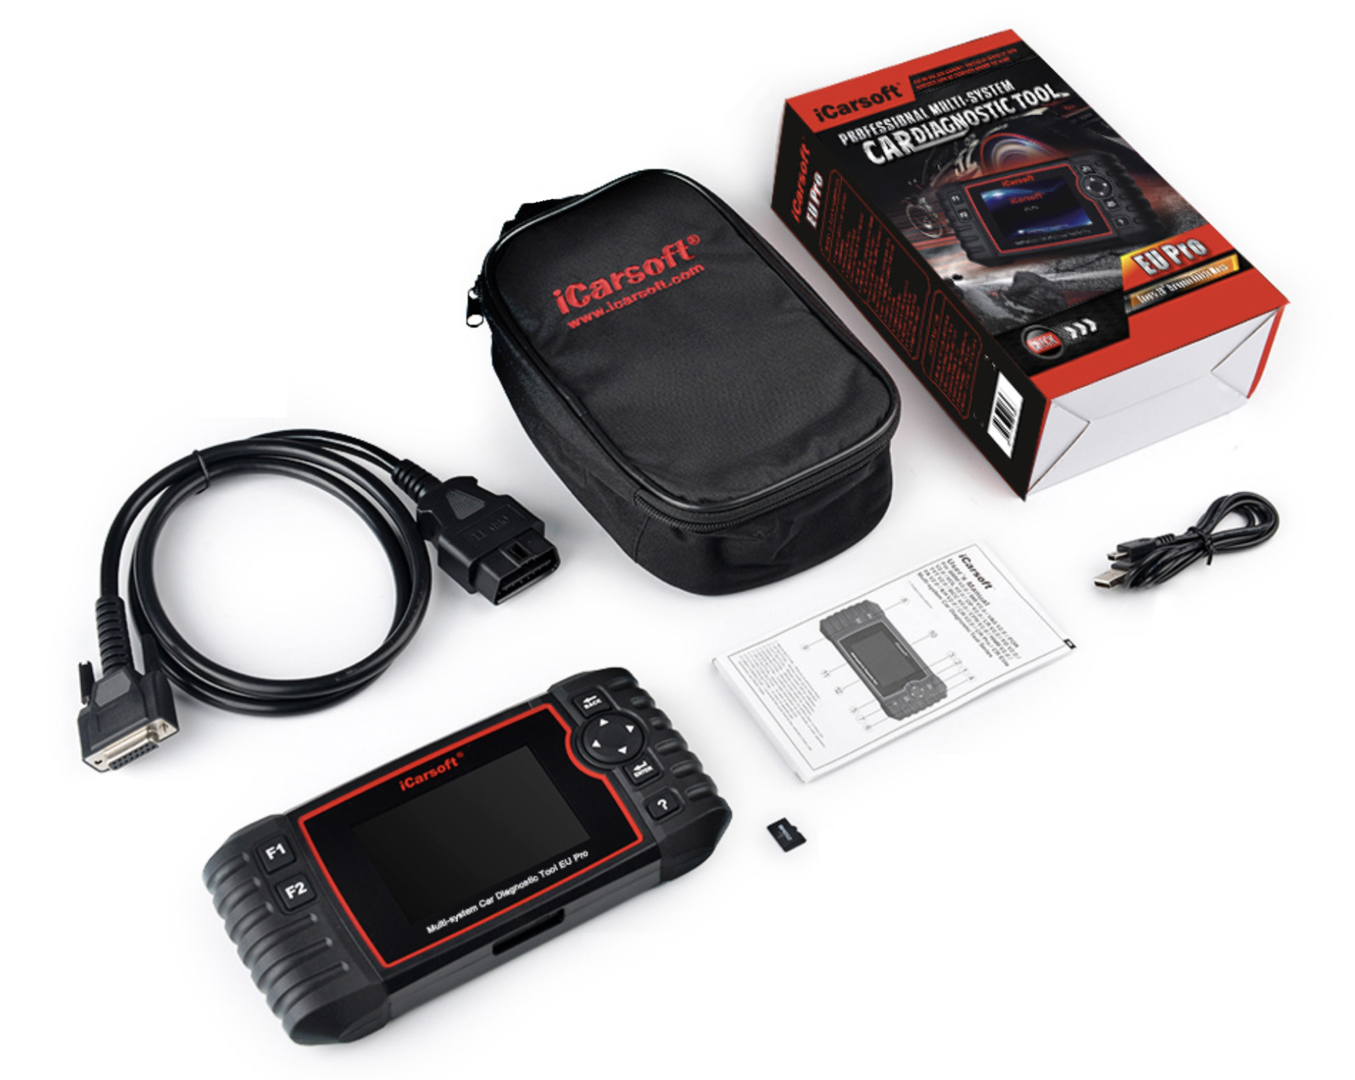 valise-diagnostic-icarsoft-eu-pro-8